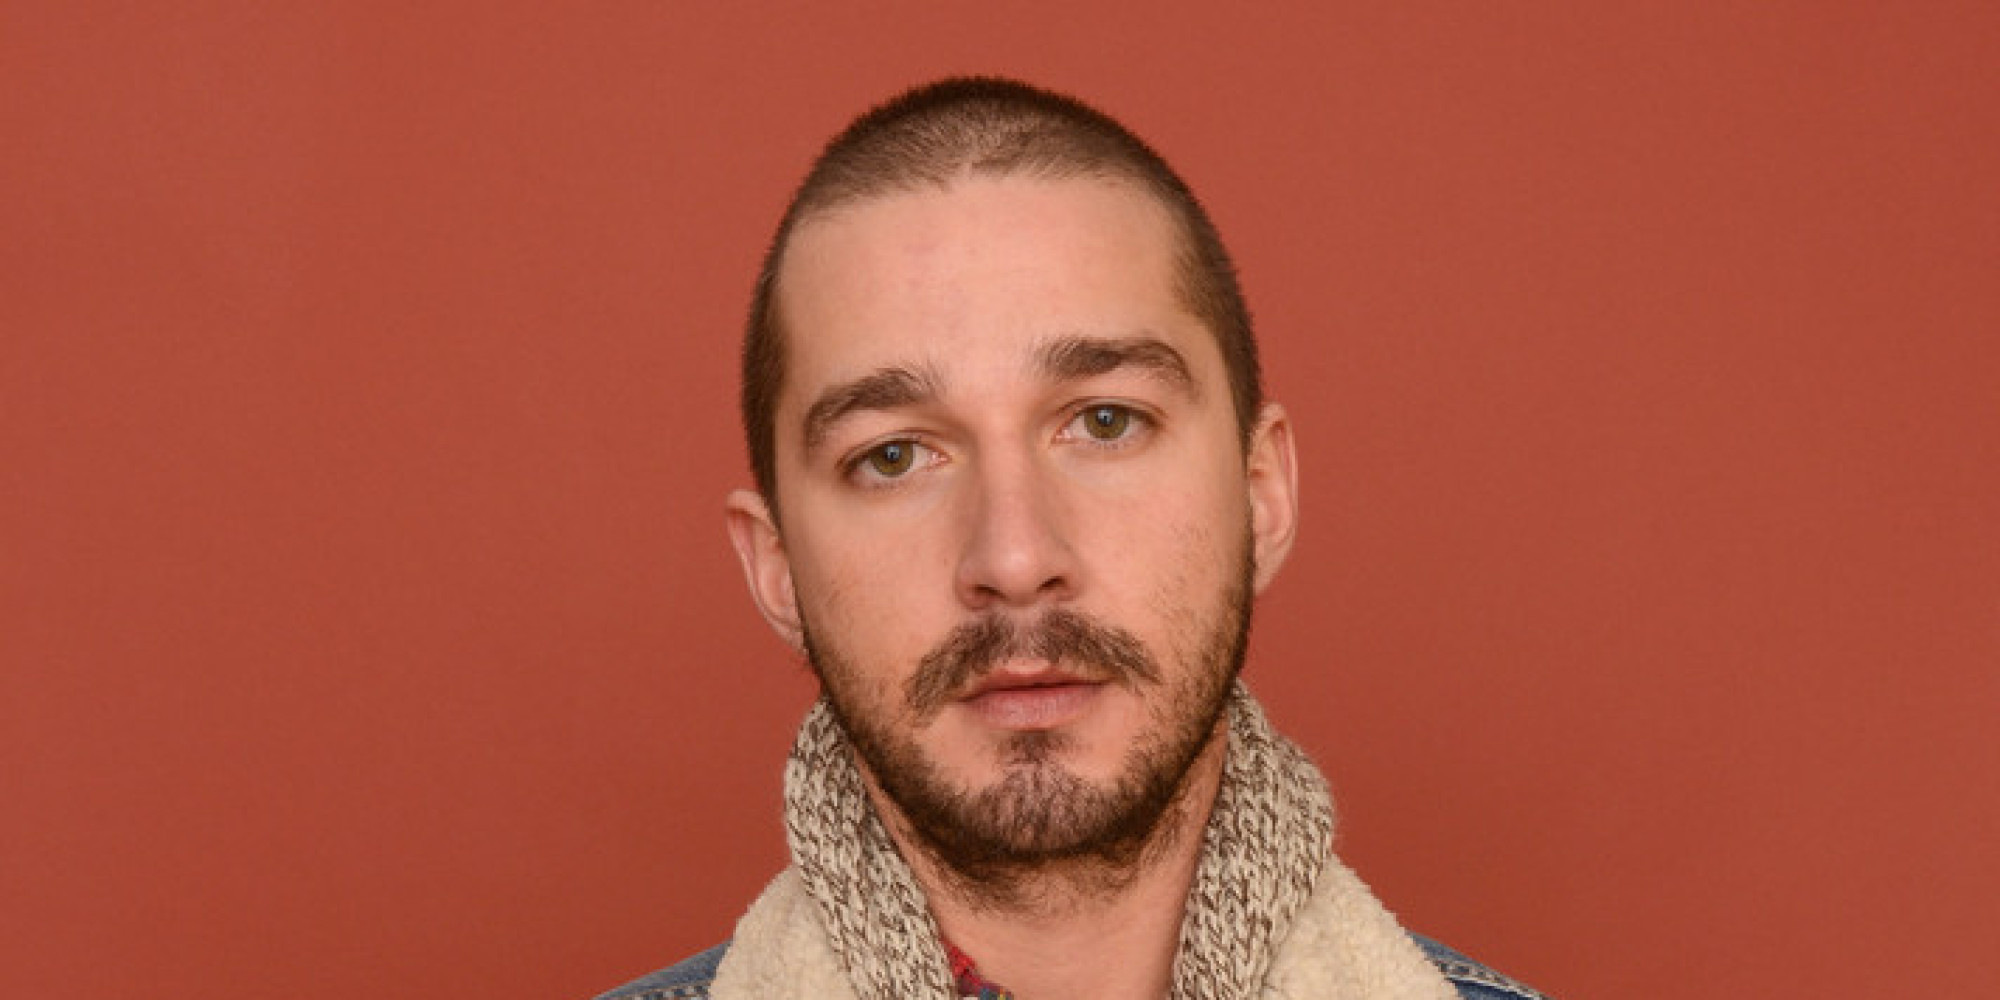 Shia LaBeouf Apologizes After Short Film Plagiarism Accusations ...